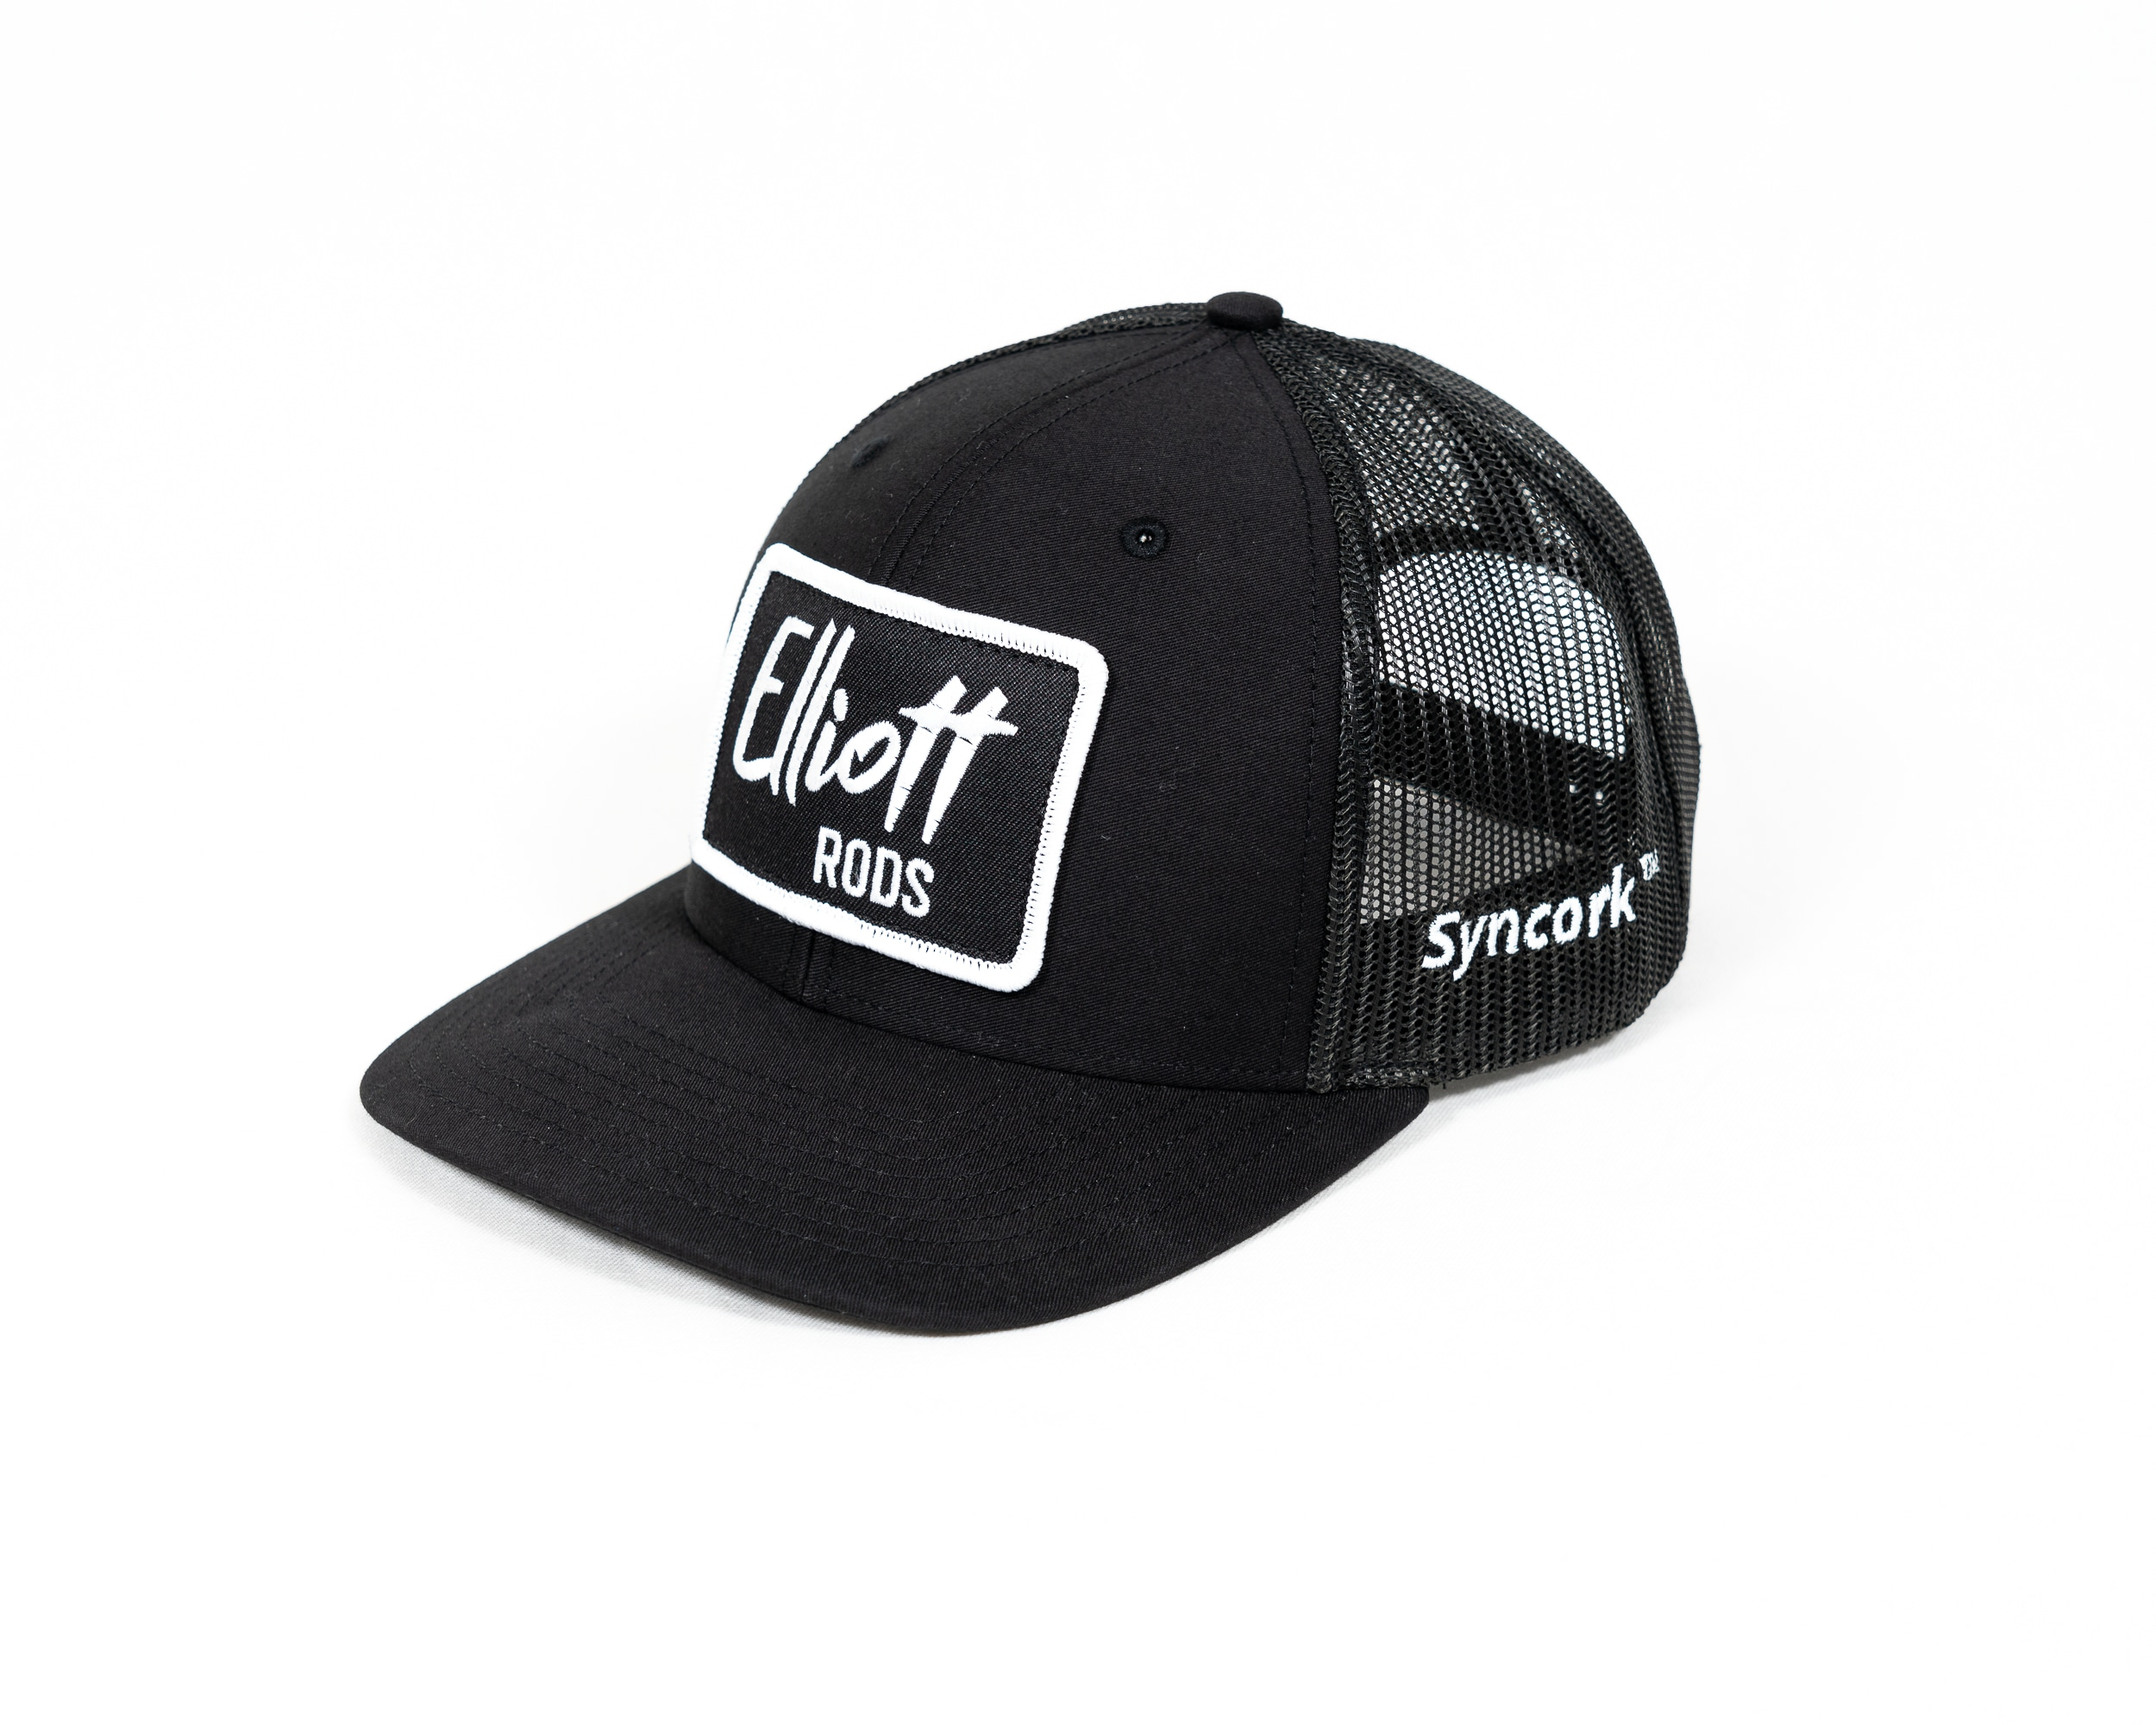 Elliott Badge Trucker Hat